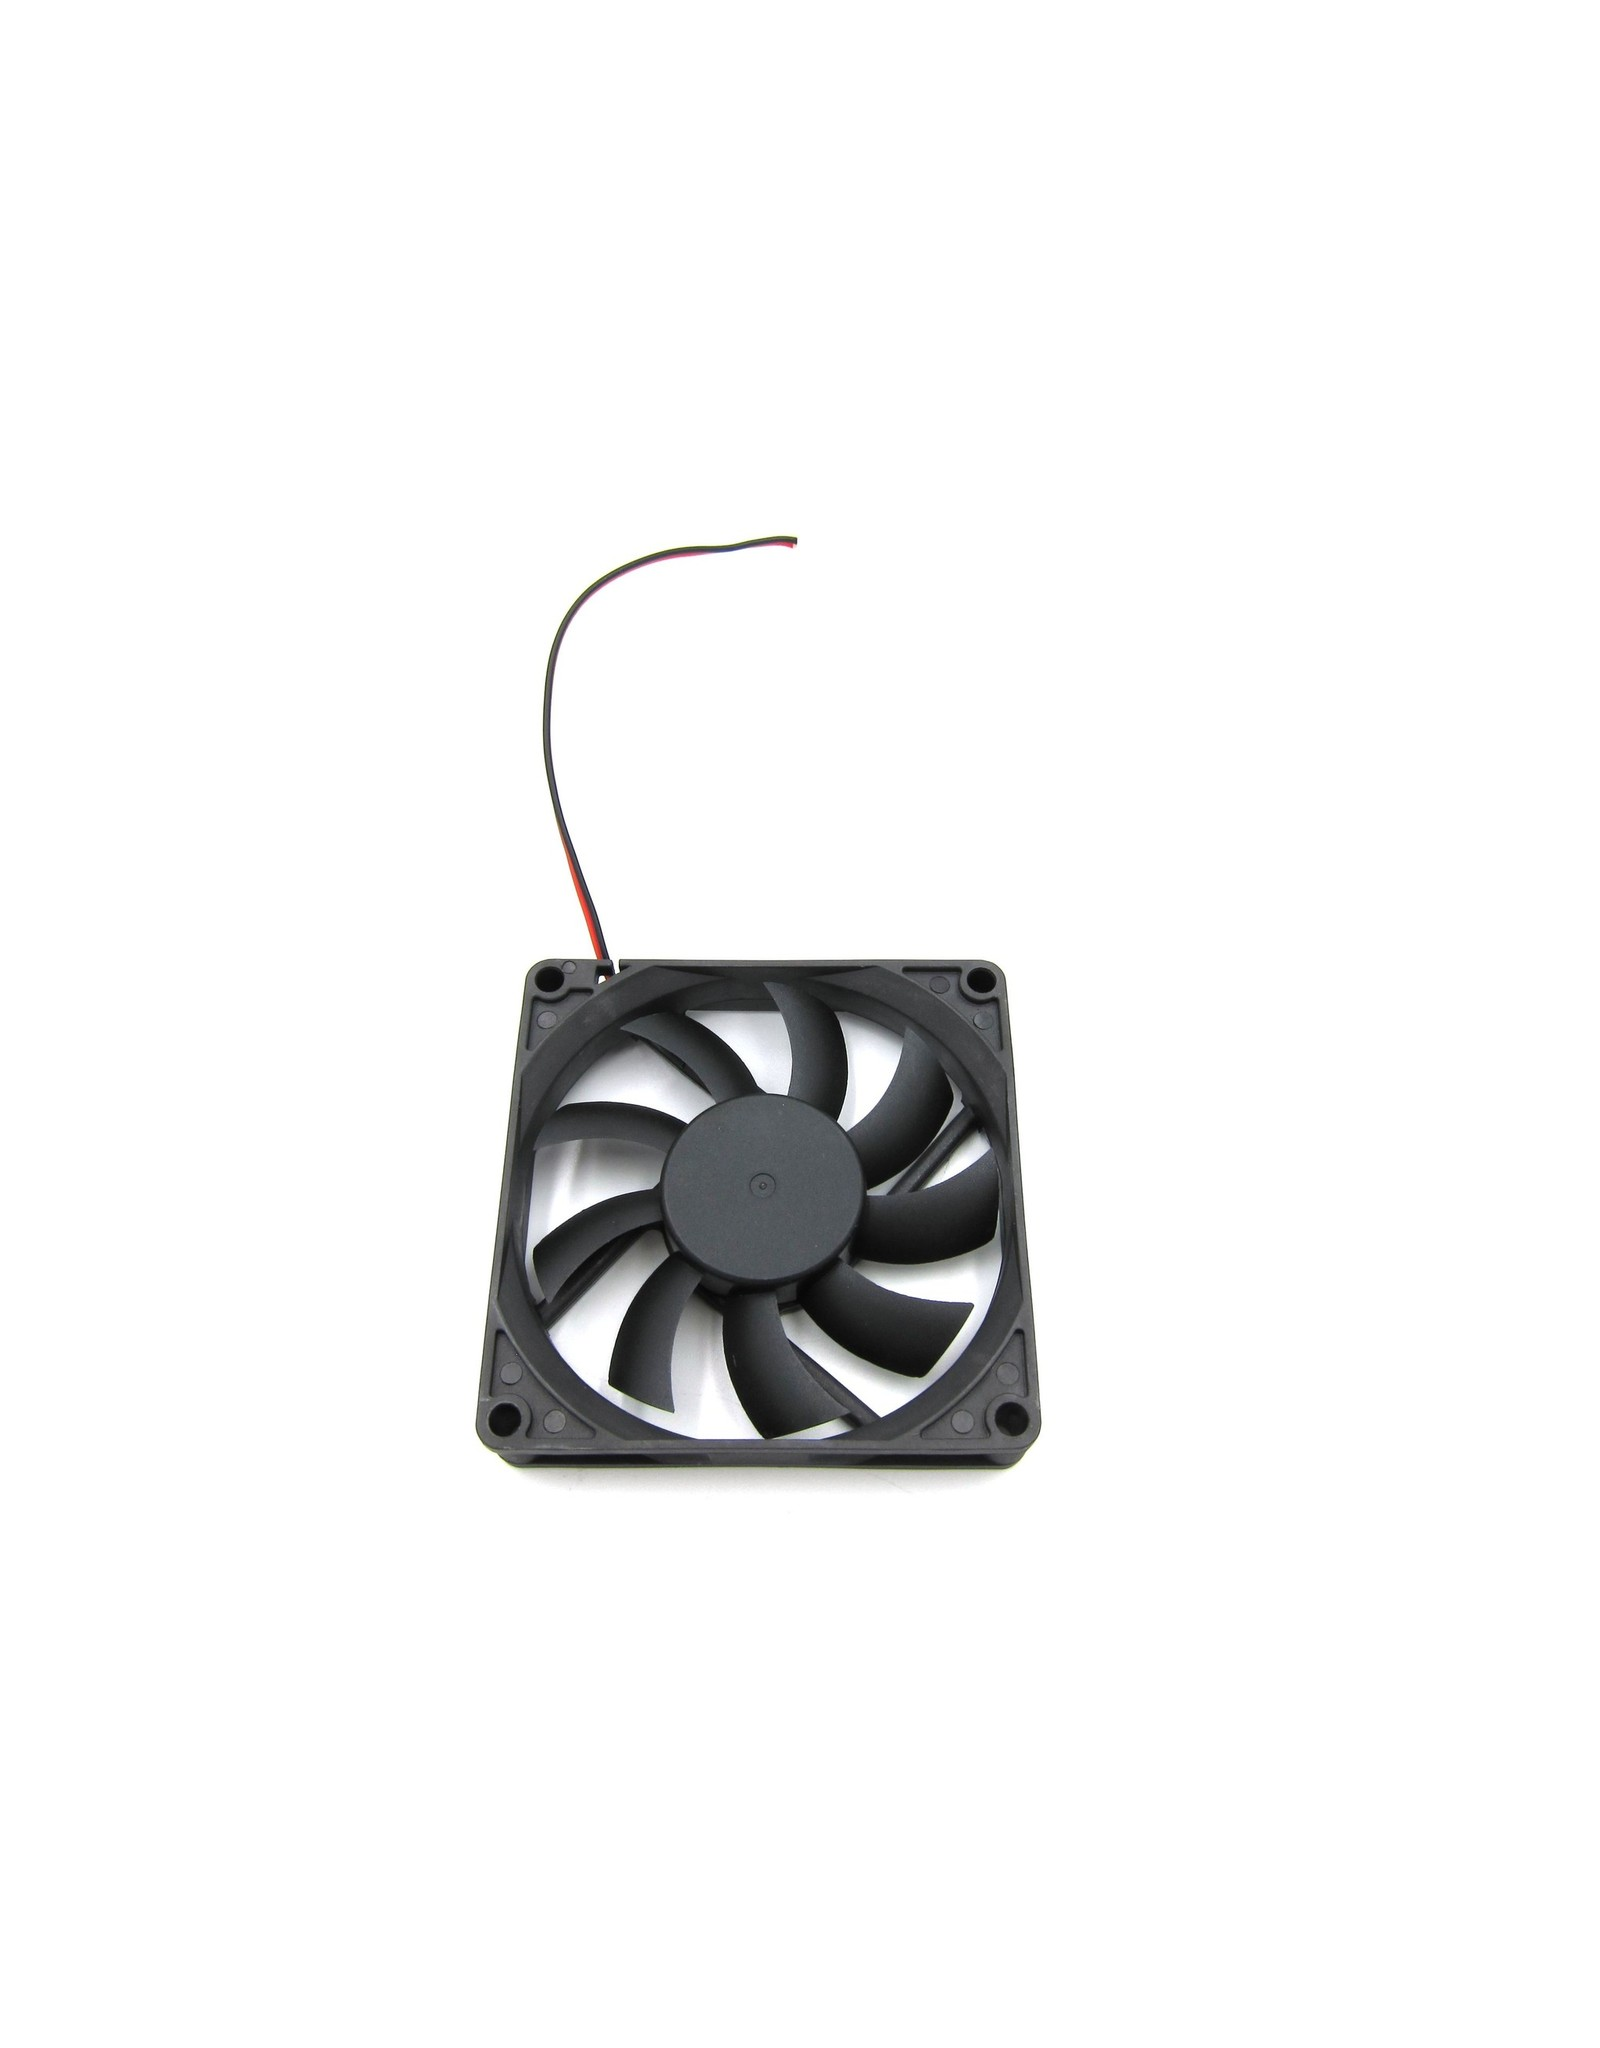 Anycubic Anycubic Photon  UV-Lamp Cooling Fan